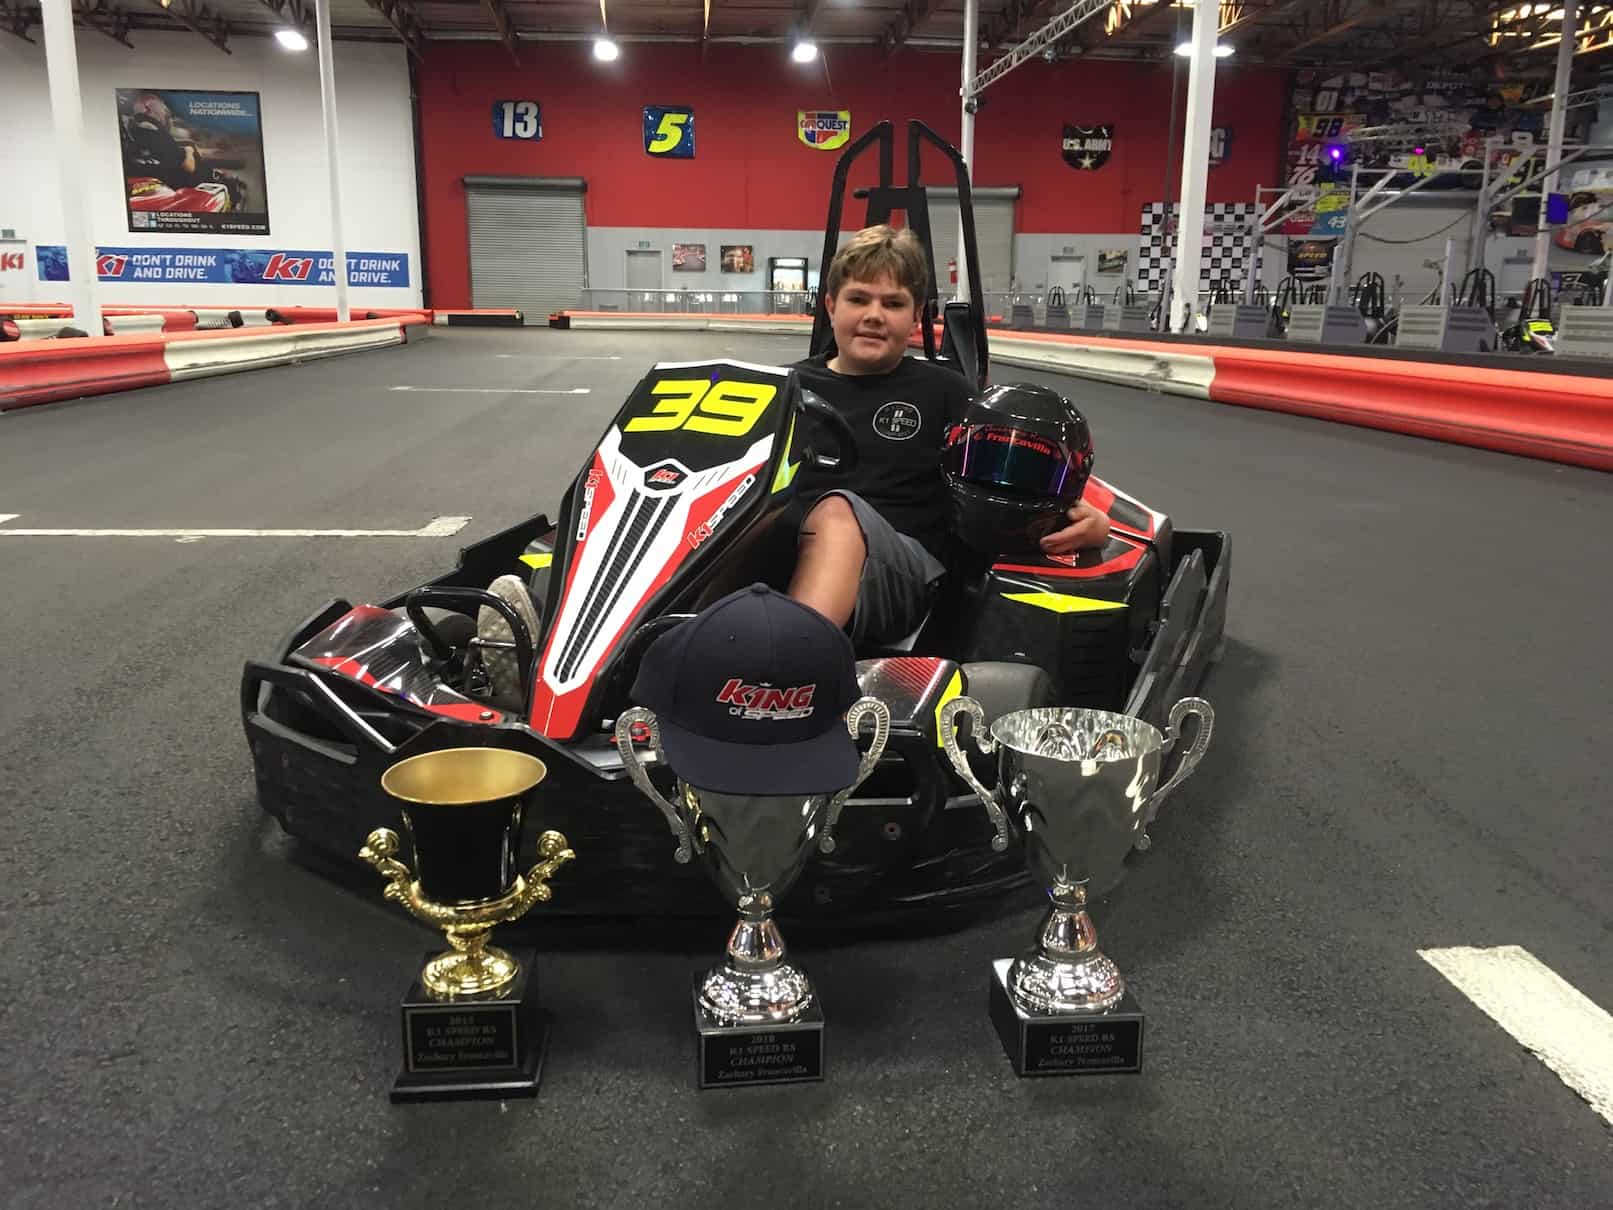 Zachary Francavilla sits in a gokart at K1 Speed surrounded by his trophies